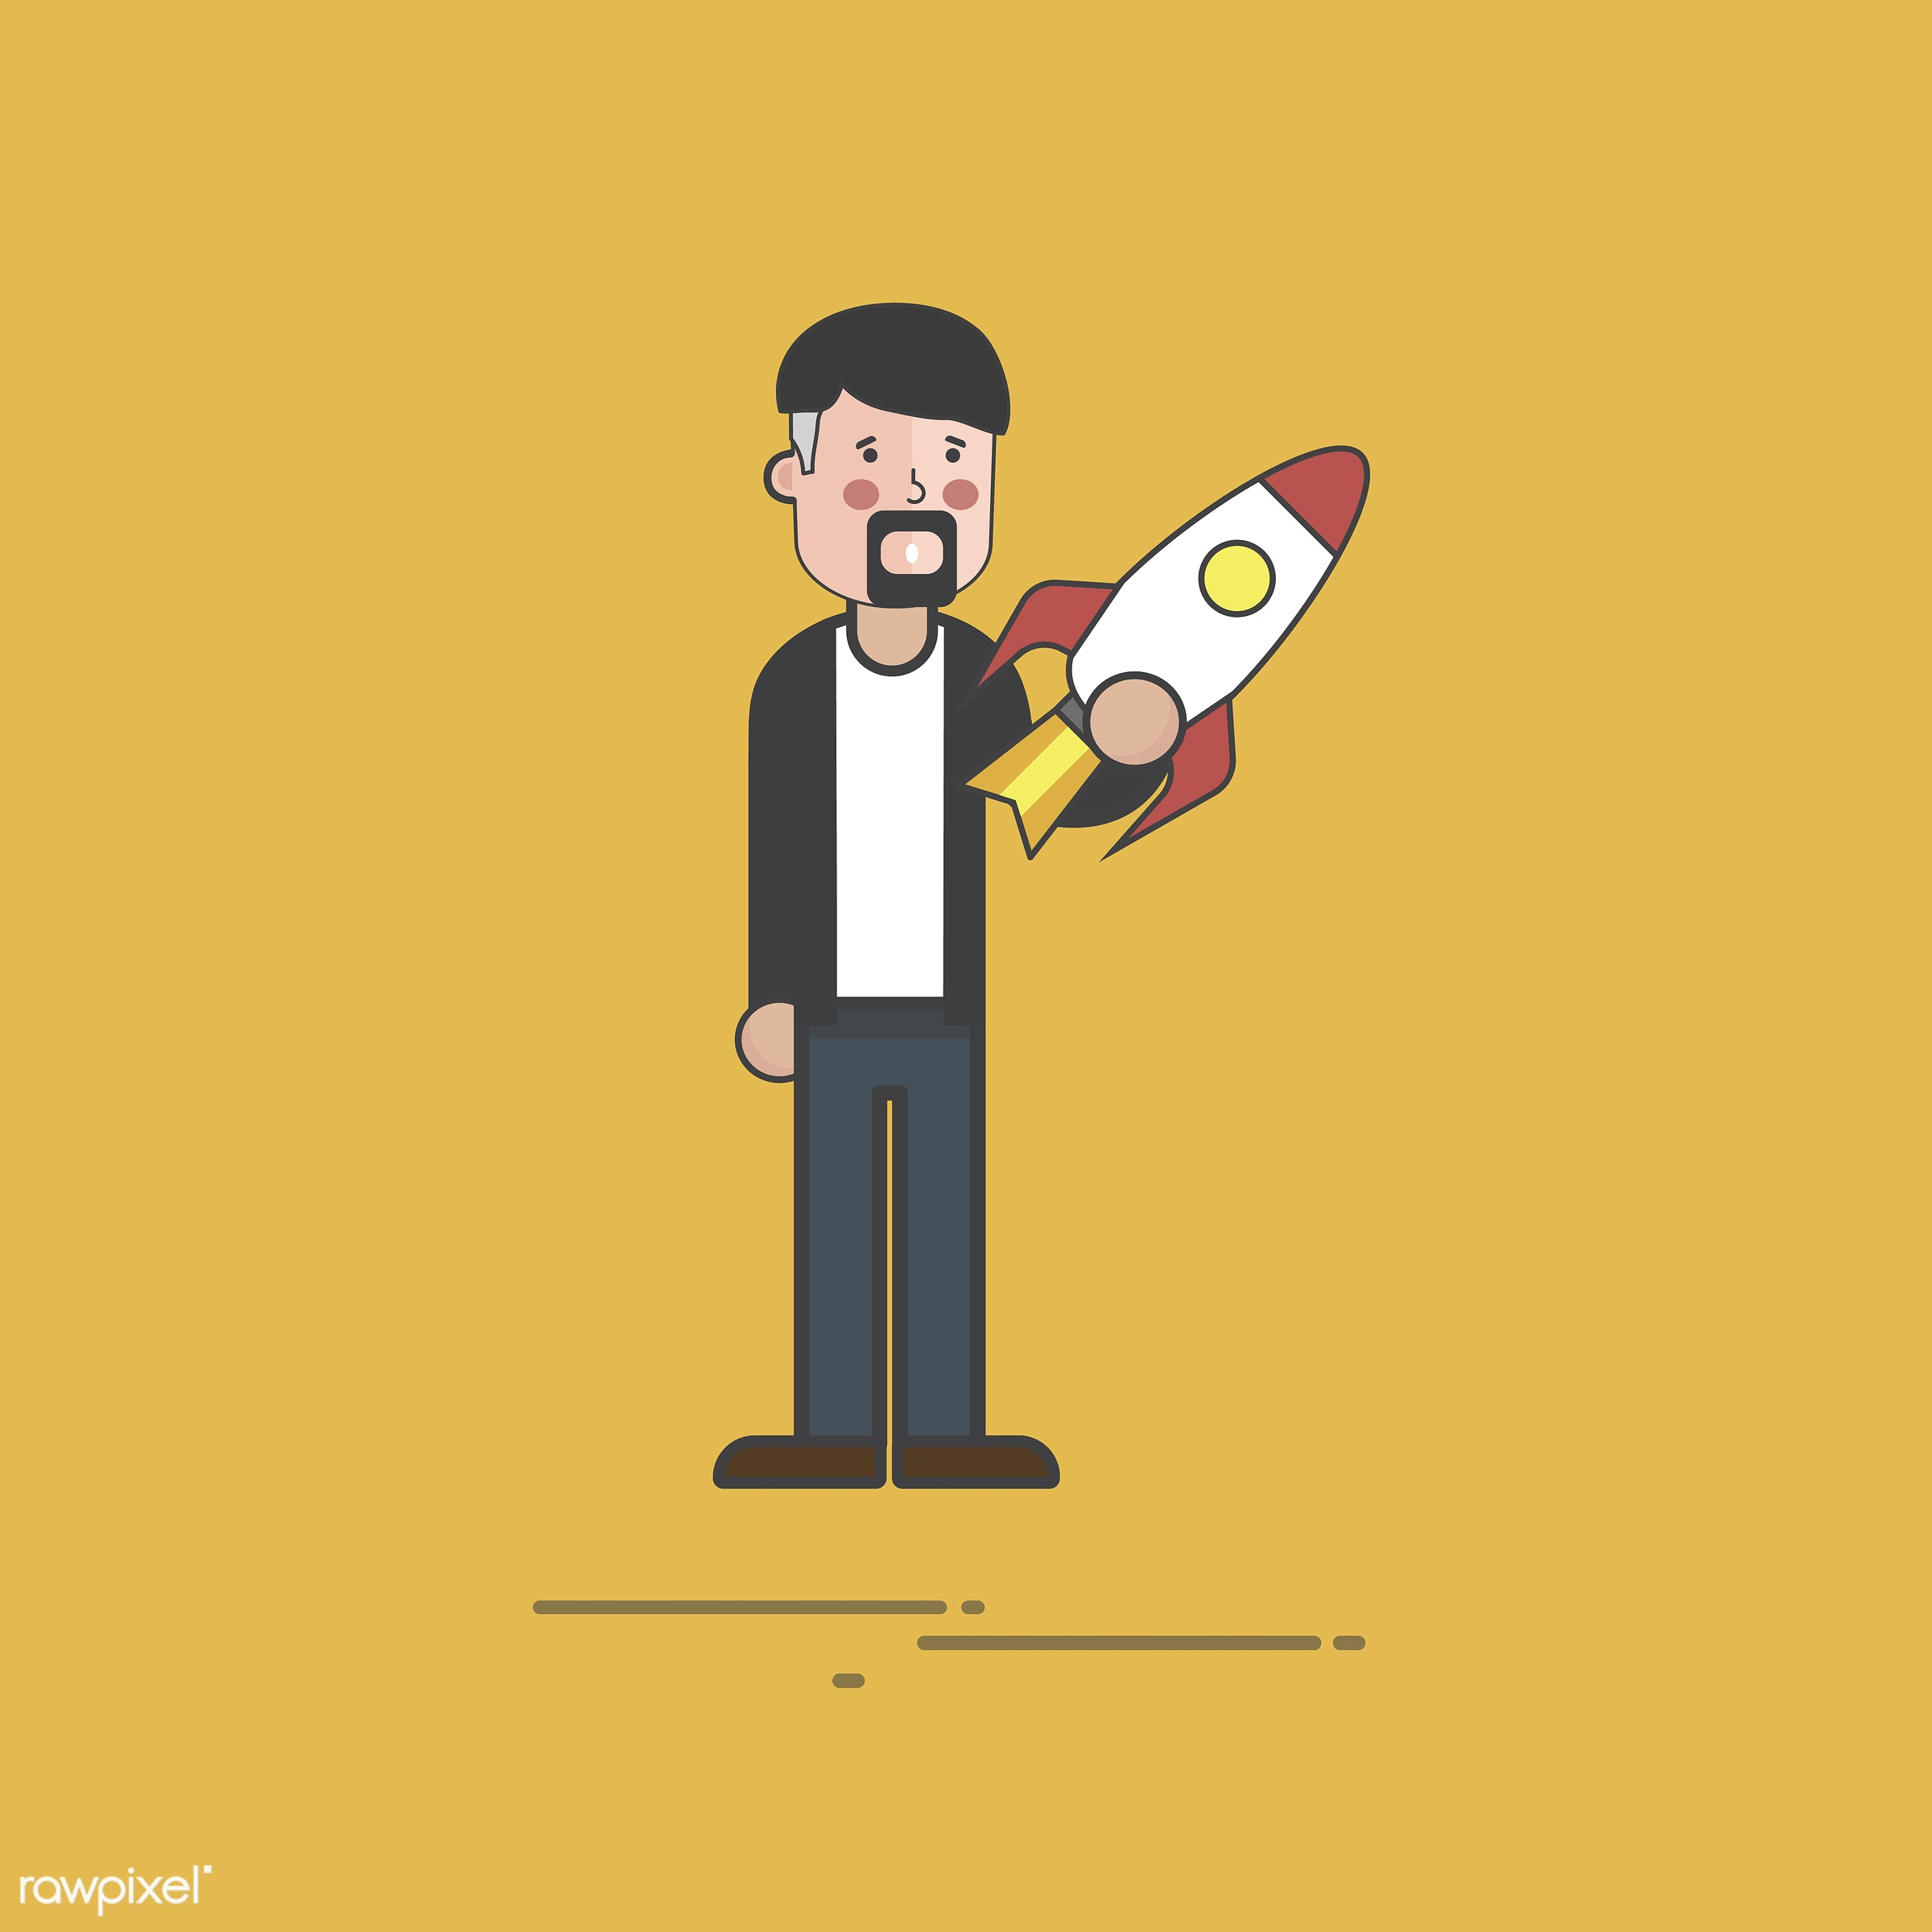 Illustration of people avatar - business, cartoon, character, drawing, flat, graphic, icon, illustration, man, vector,...